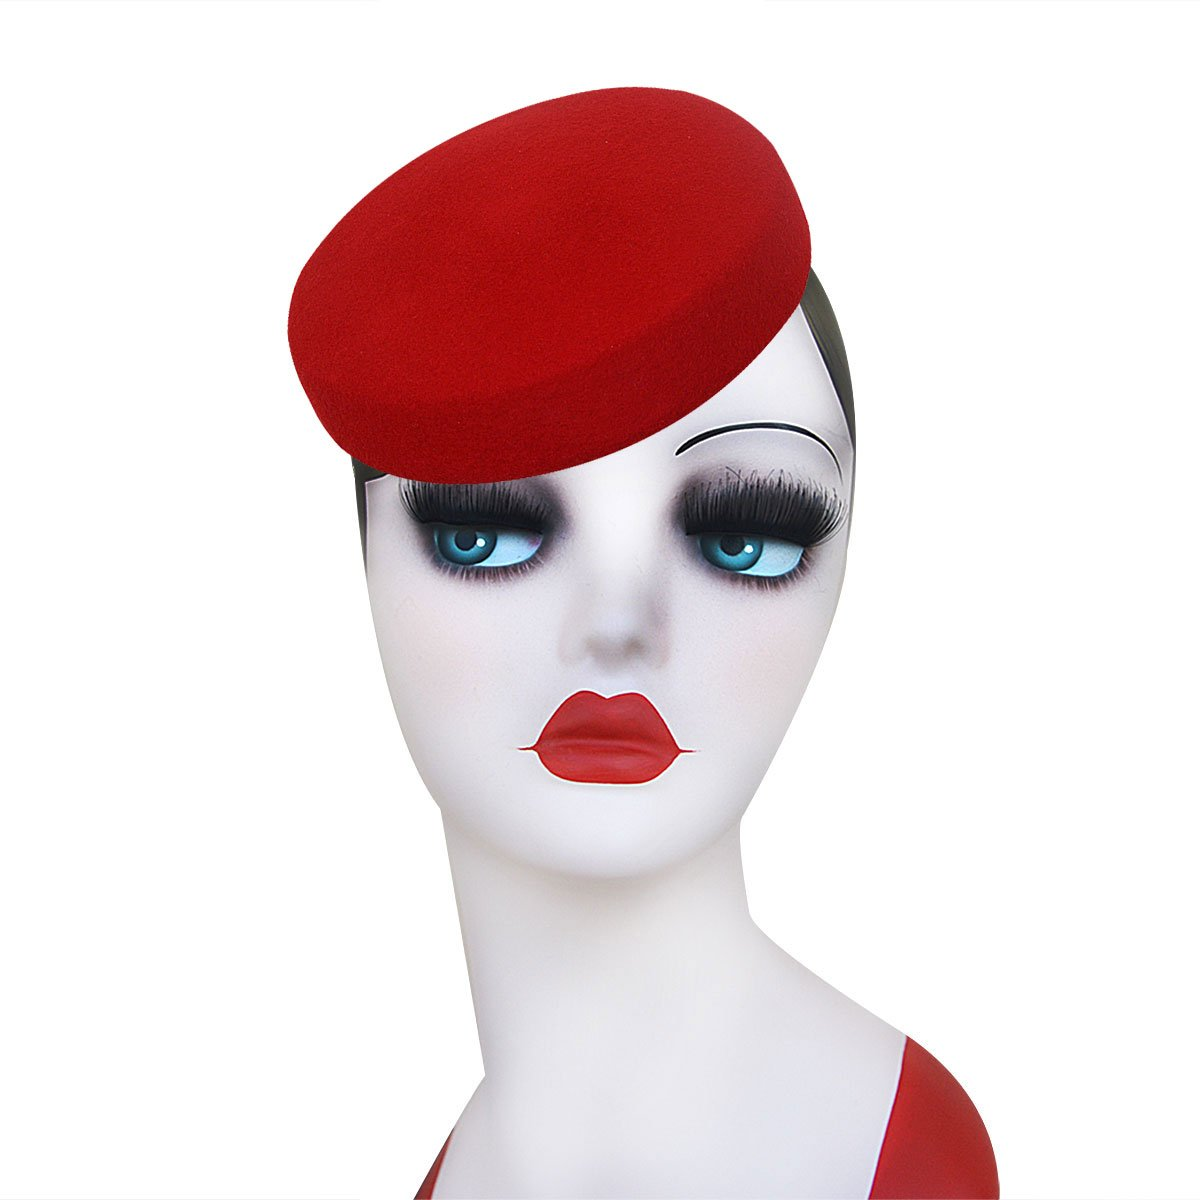 1950s Women's Hat Styles & History Lawliet Circle Wool Felt Pillbox Beret Hat millinery Fascinator Base Craft A215 $16.99 AT vintagedancer.com